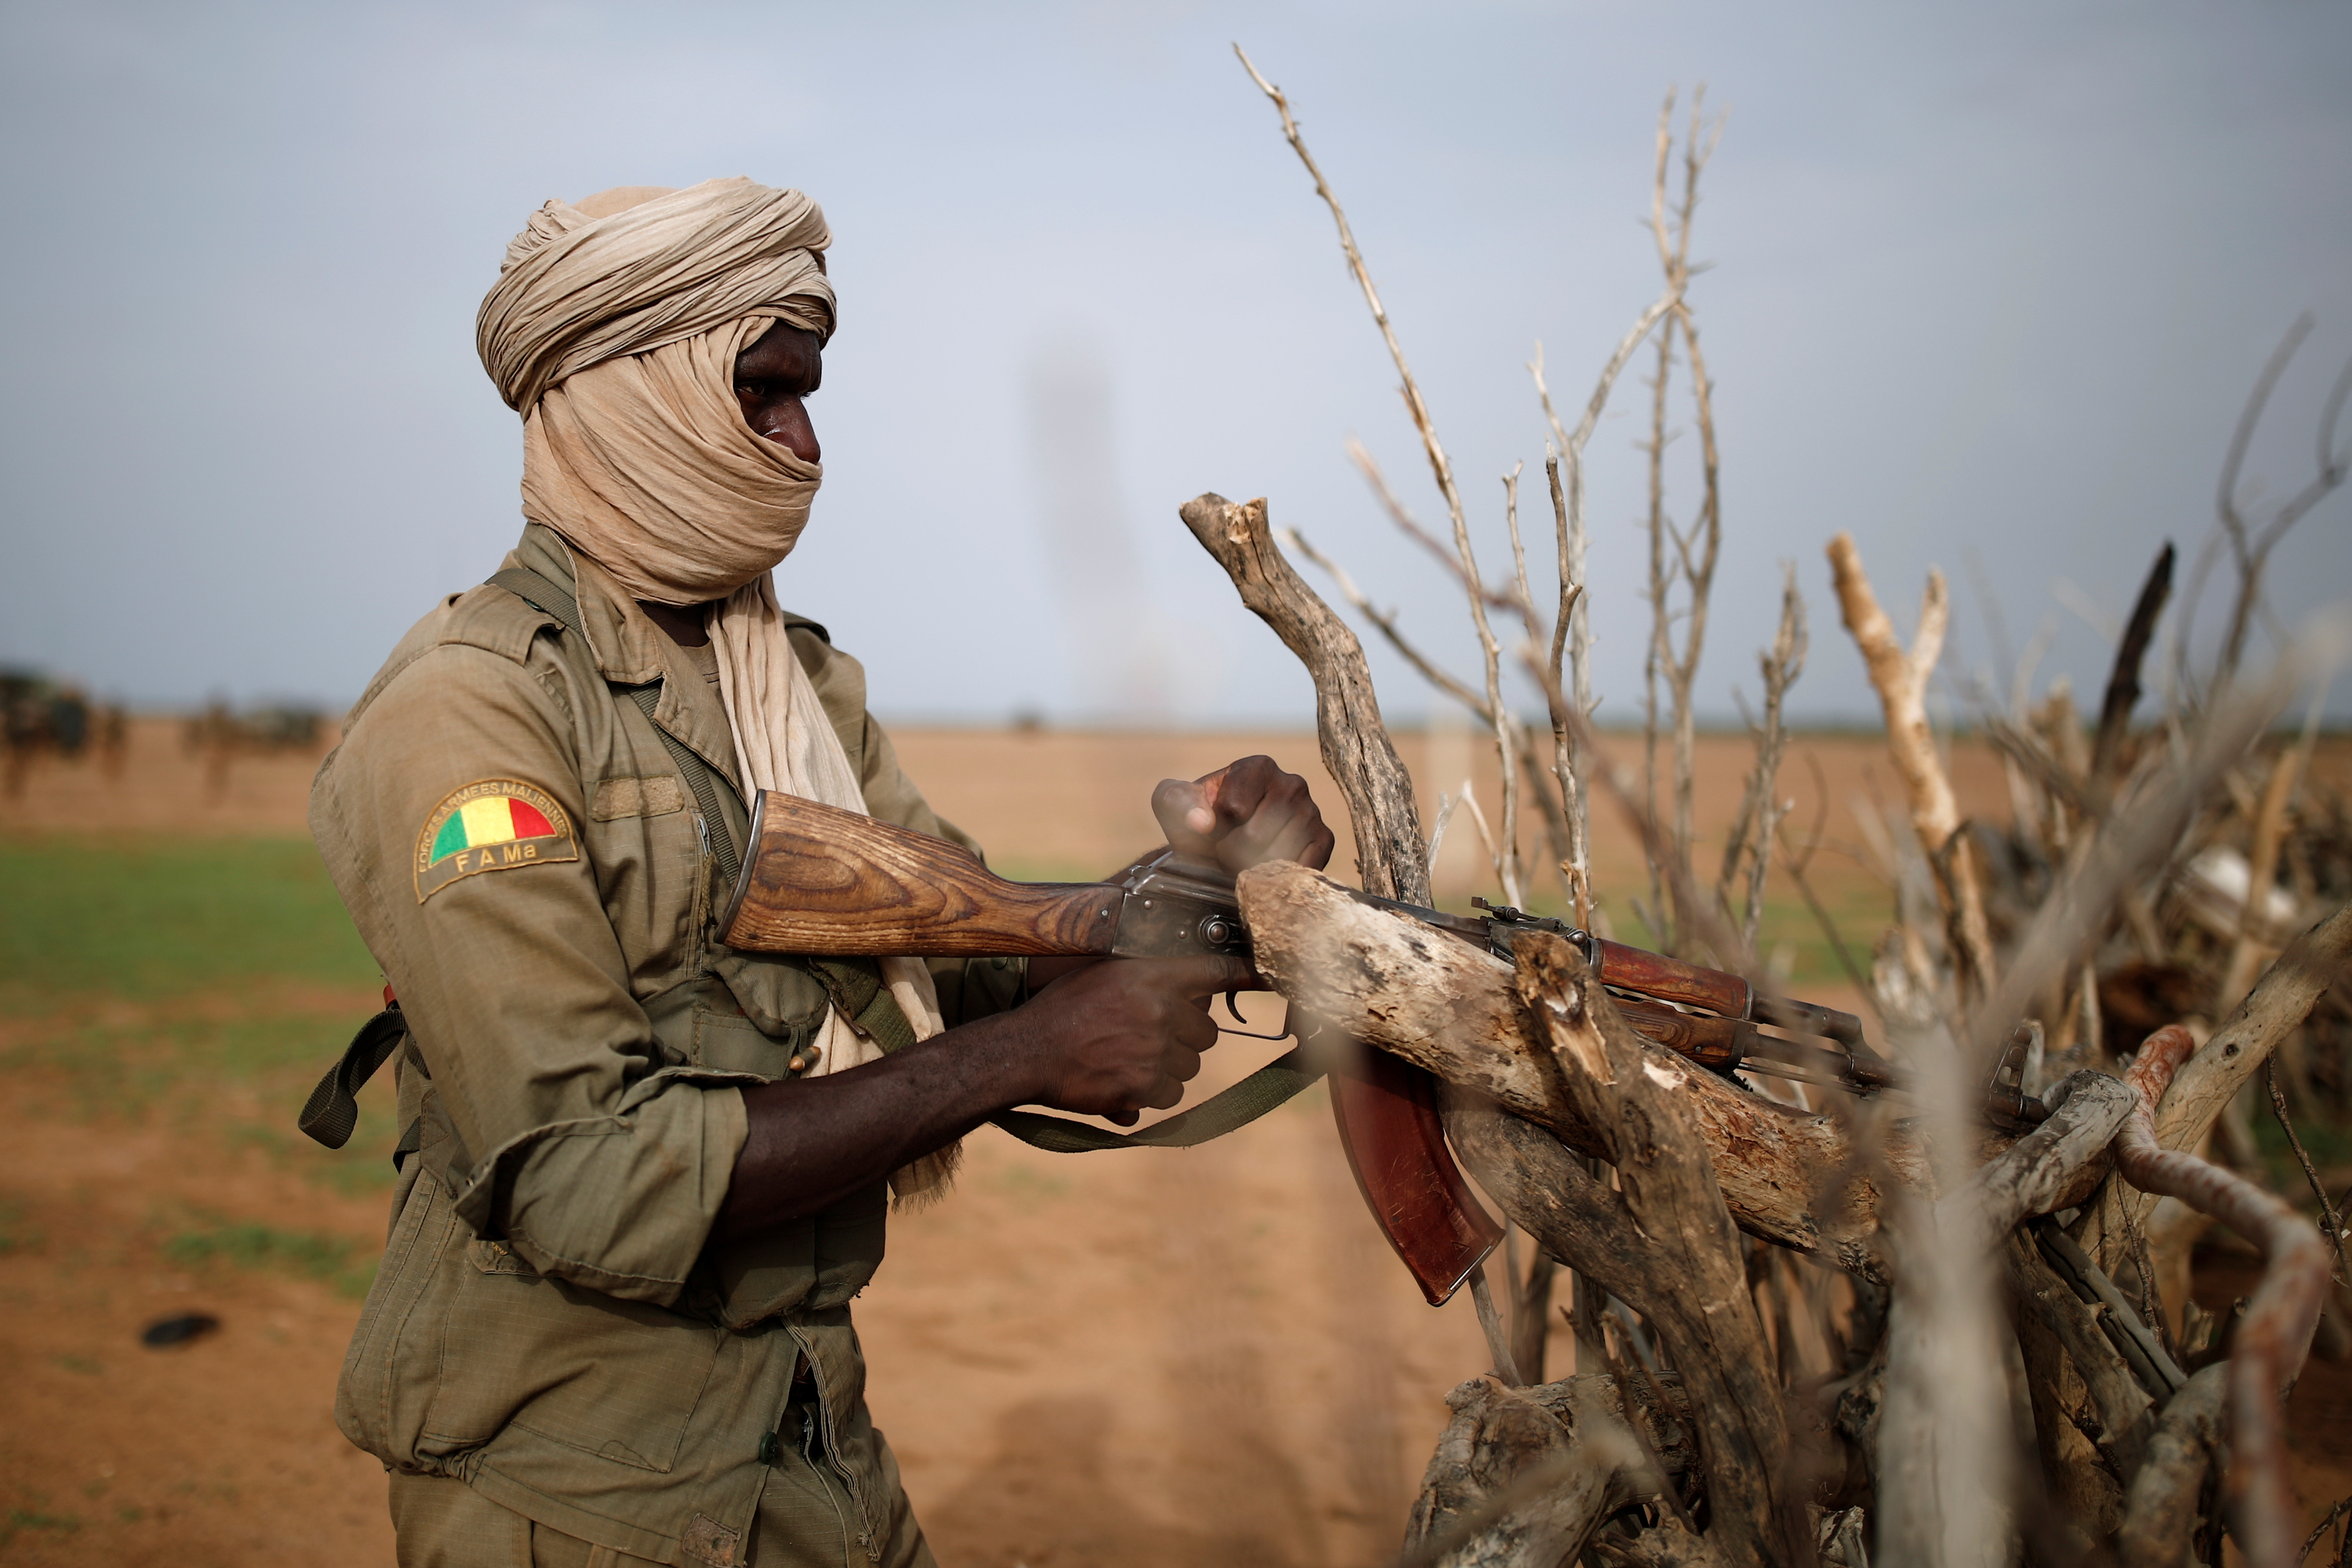 Mali: 25 Soldiers Killed in Attacks by Suspected Jihadists